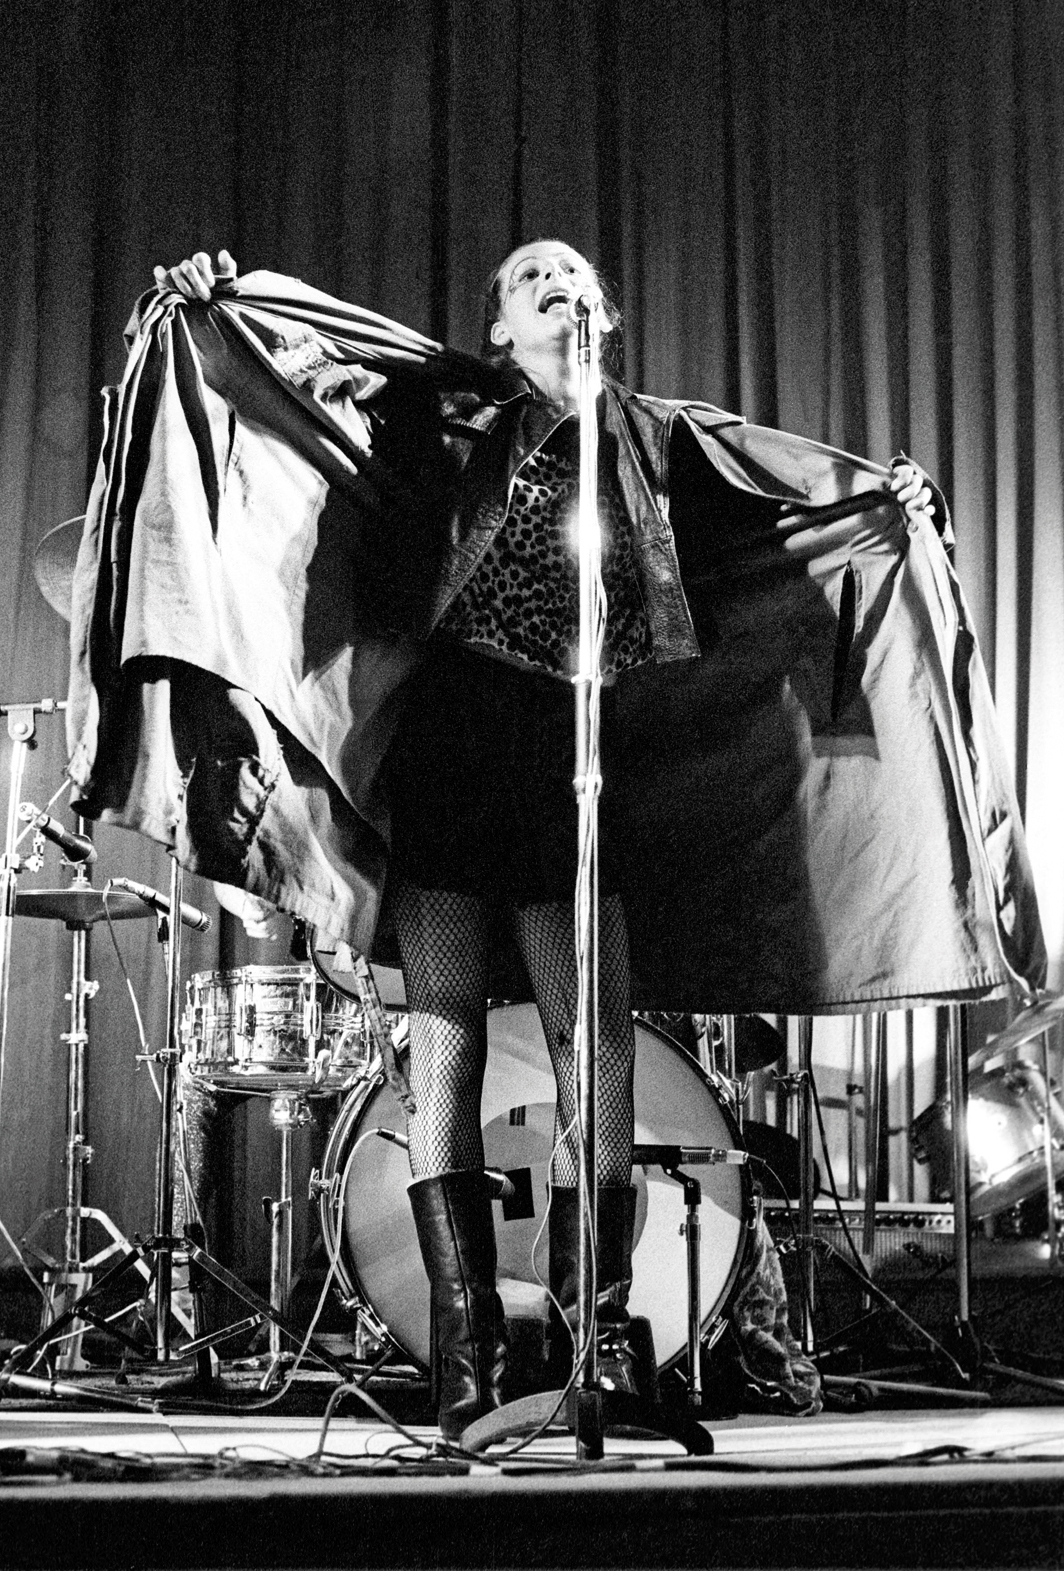 *Ari Up performing with the Slits at the Coliseum, London, March 11, 1977.* Photo: Ian Dickson/Shutterstock.